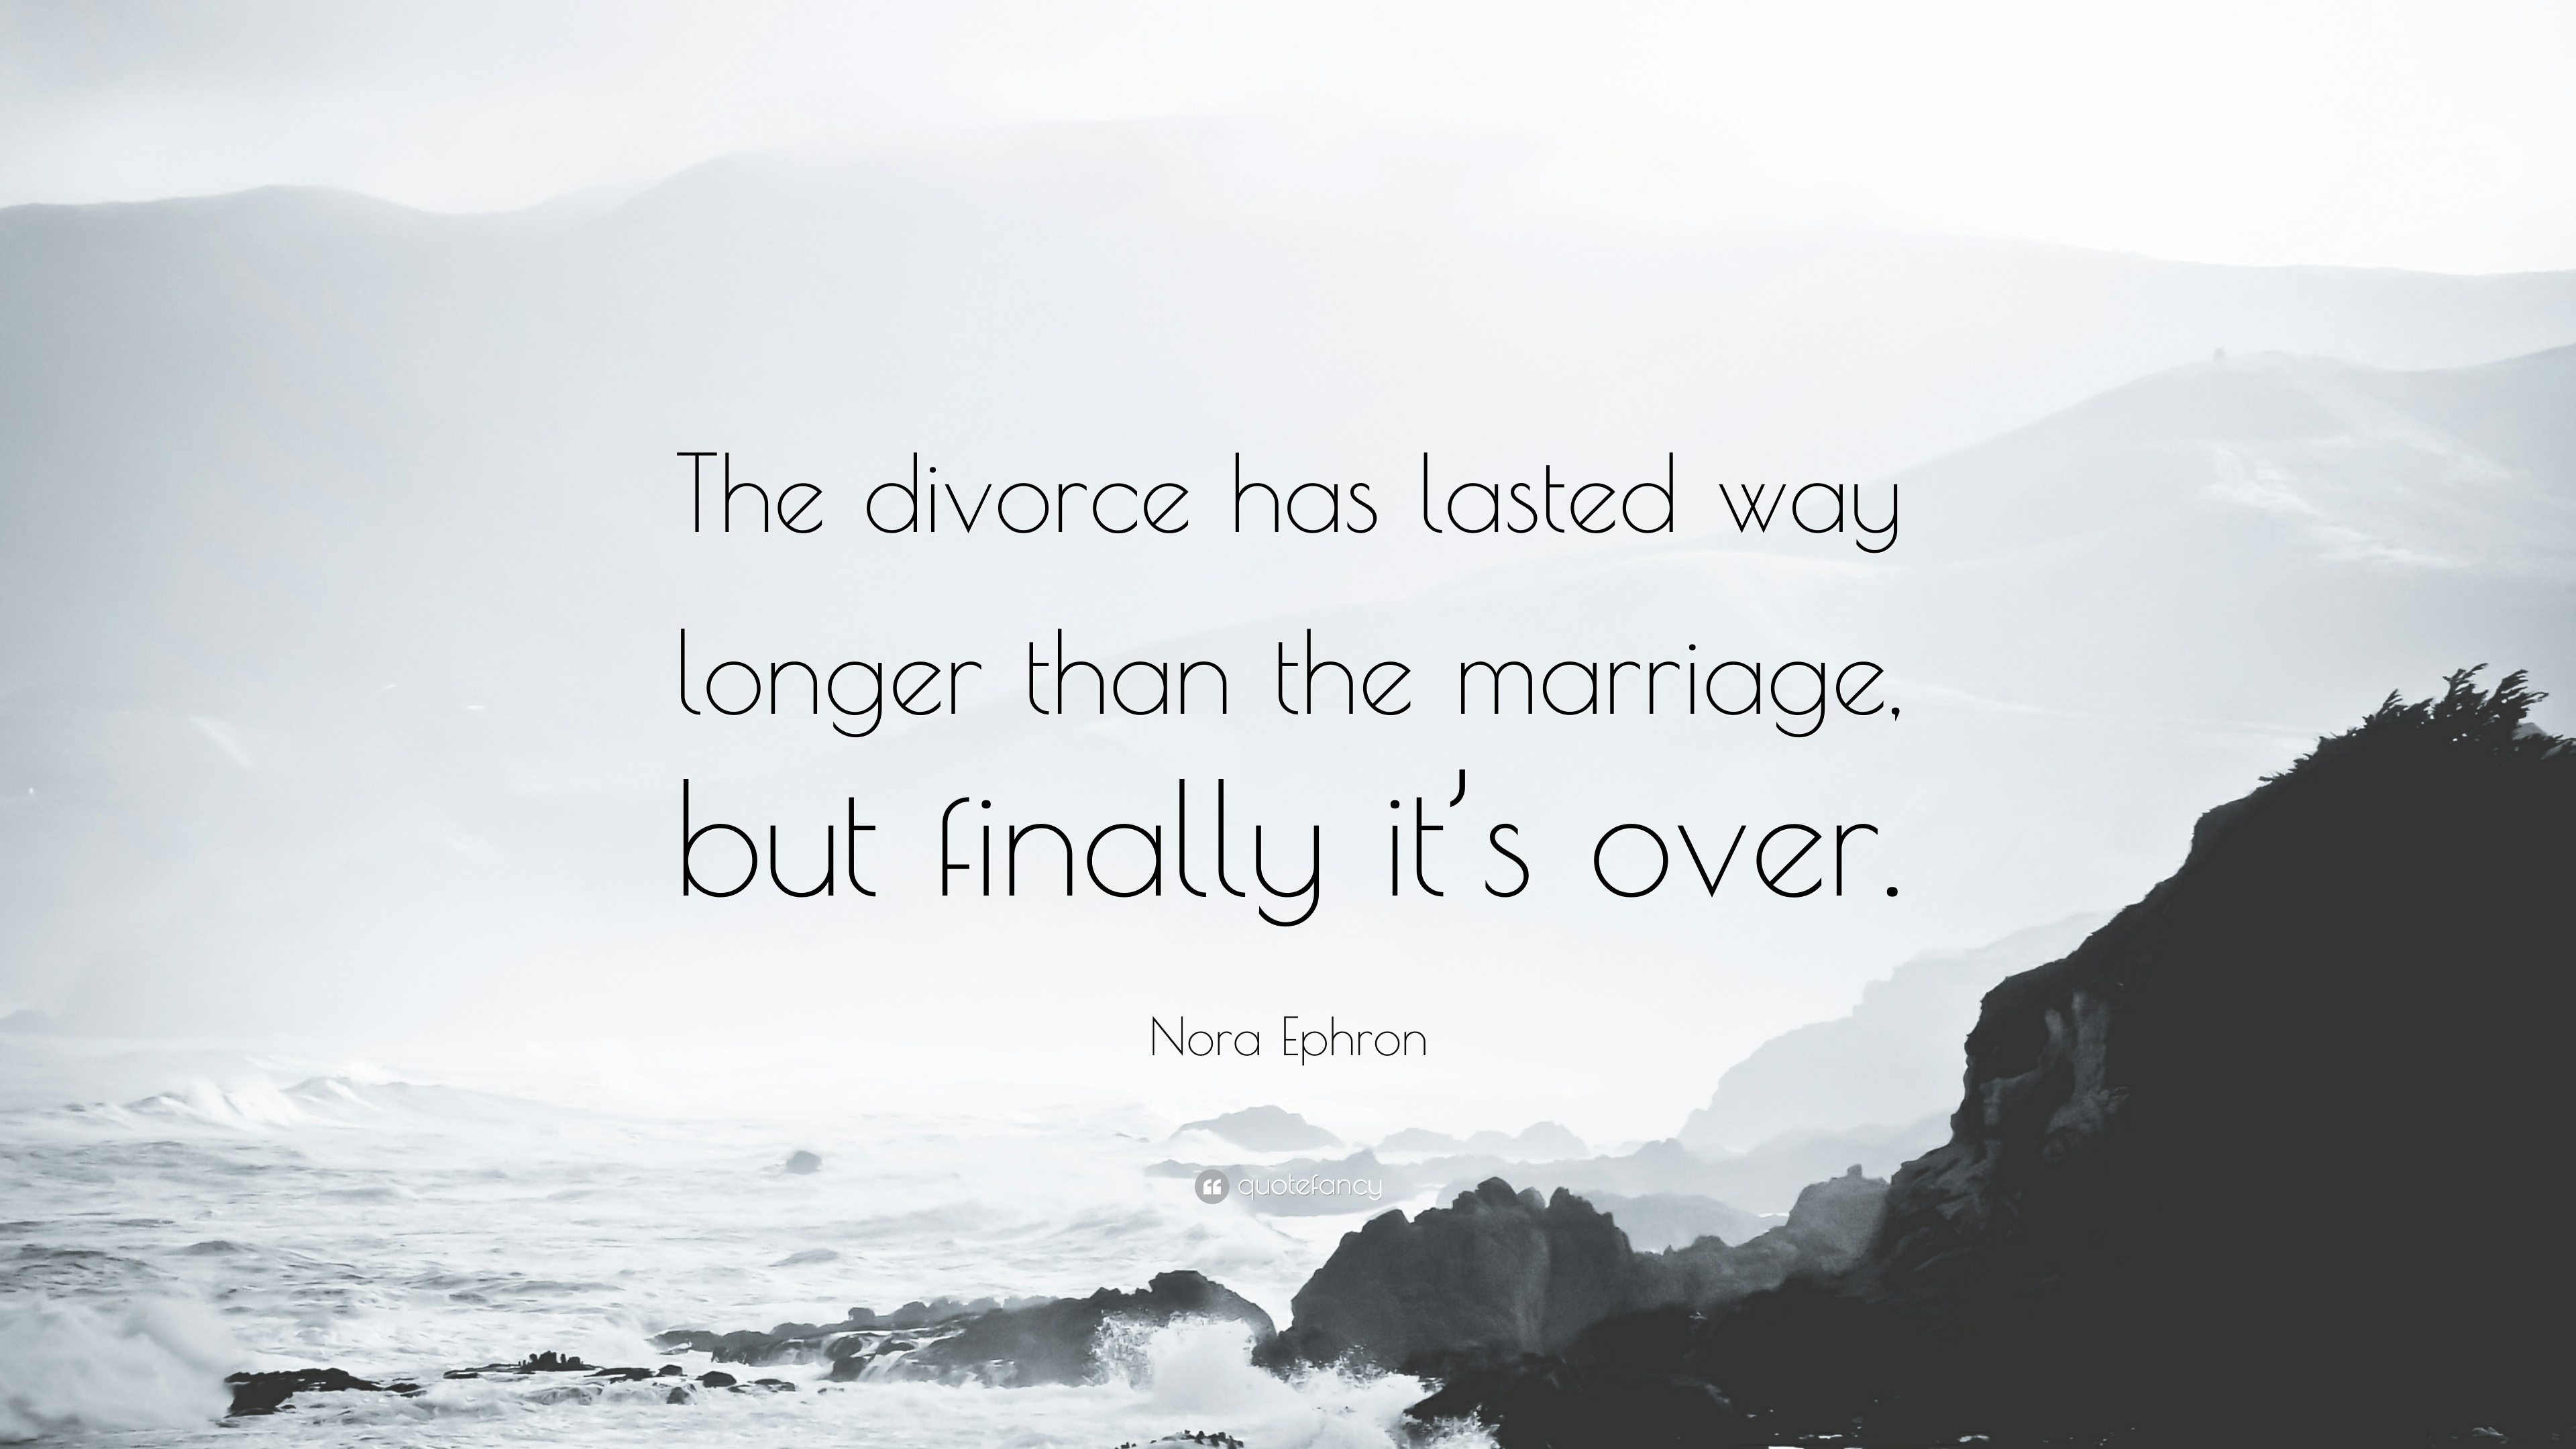 Finally Its Over Quotes Image 16